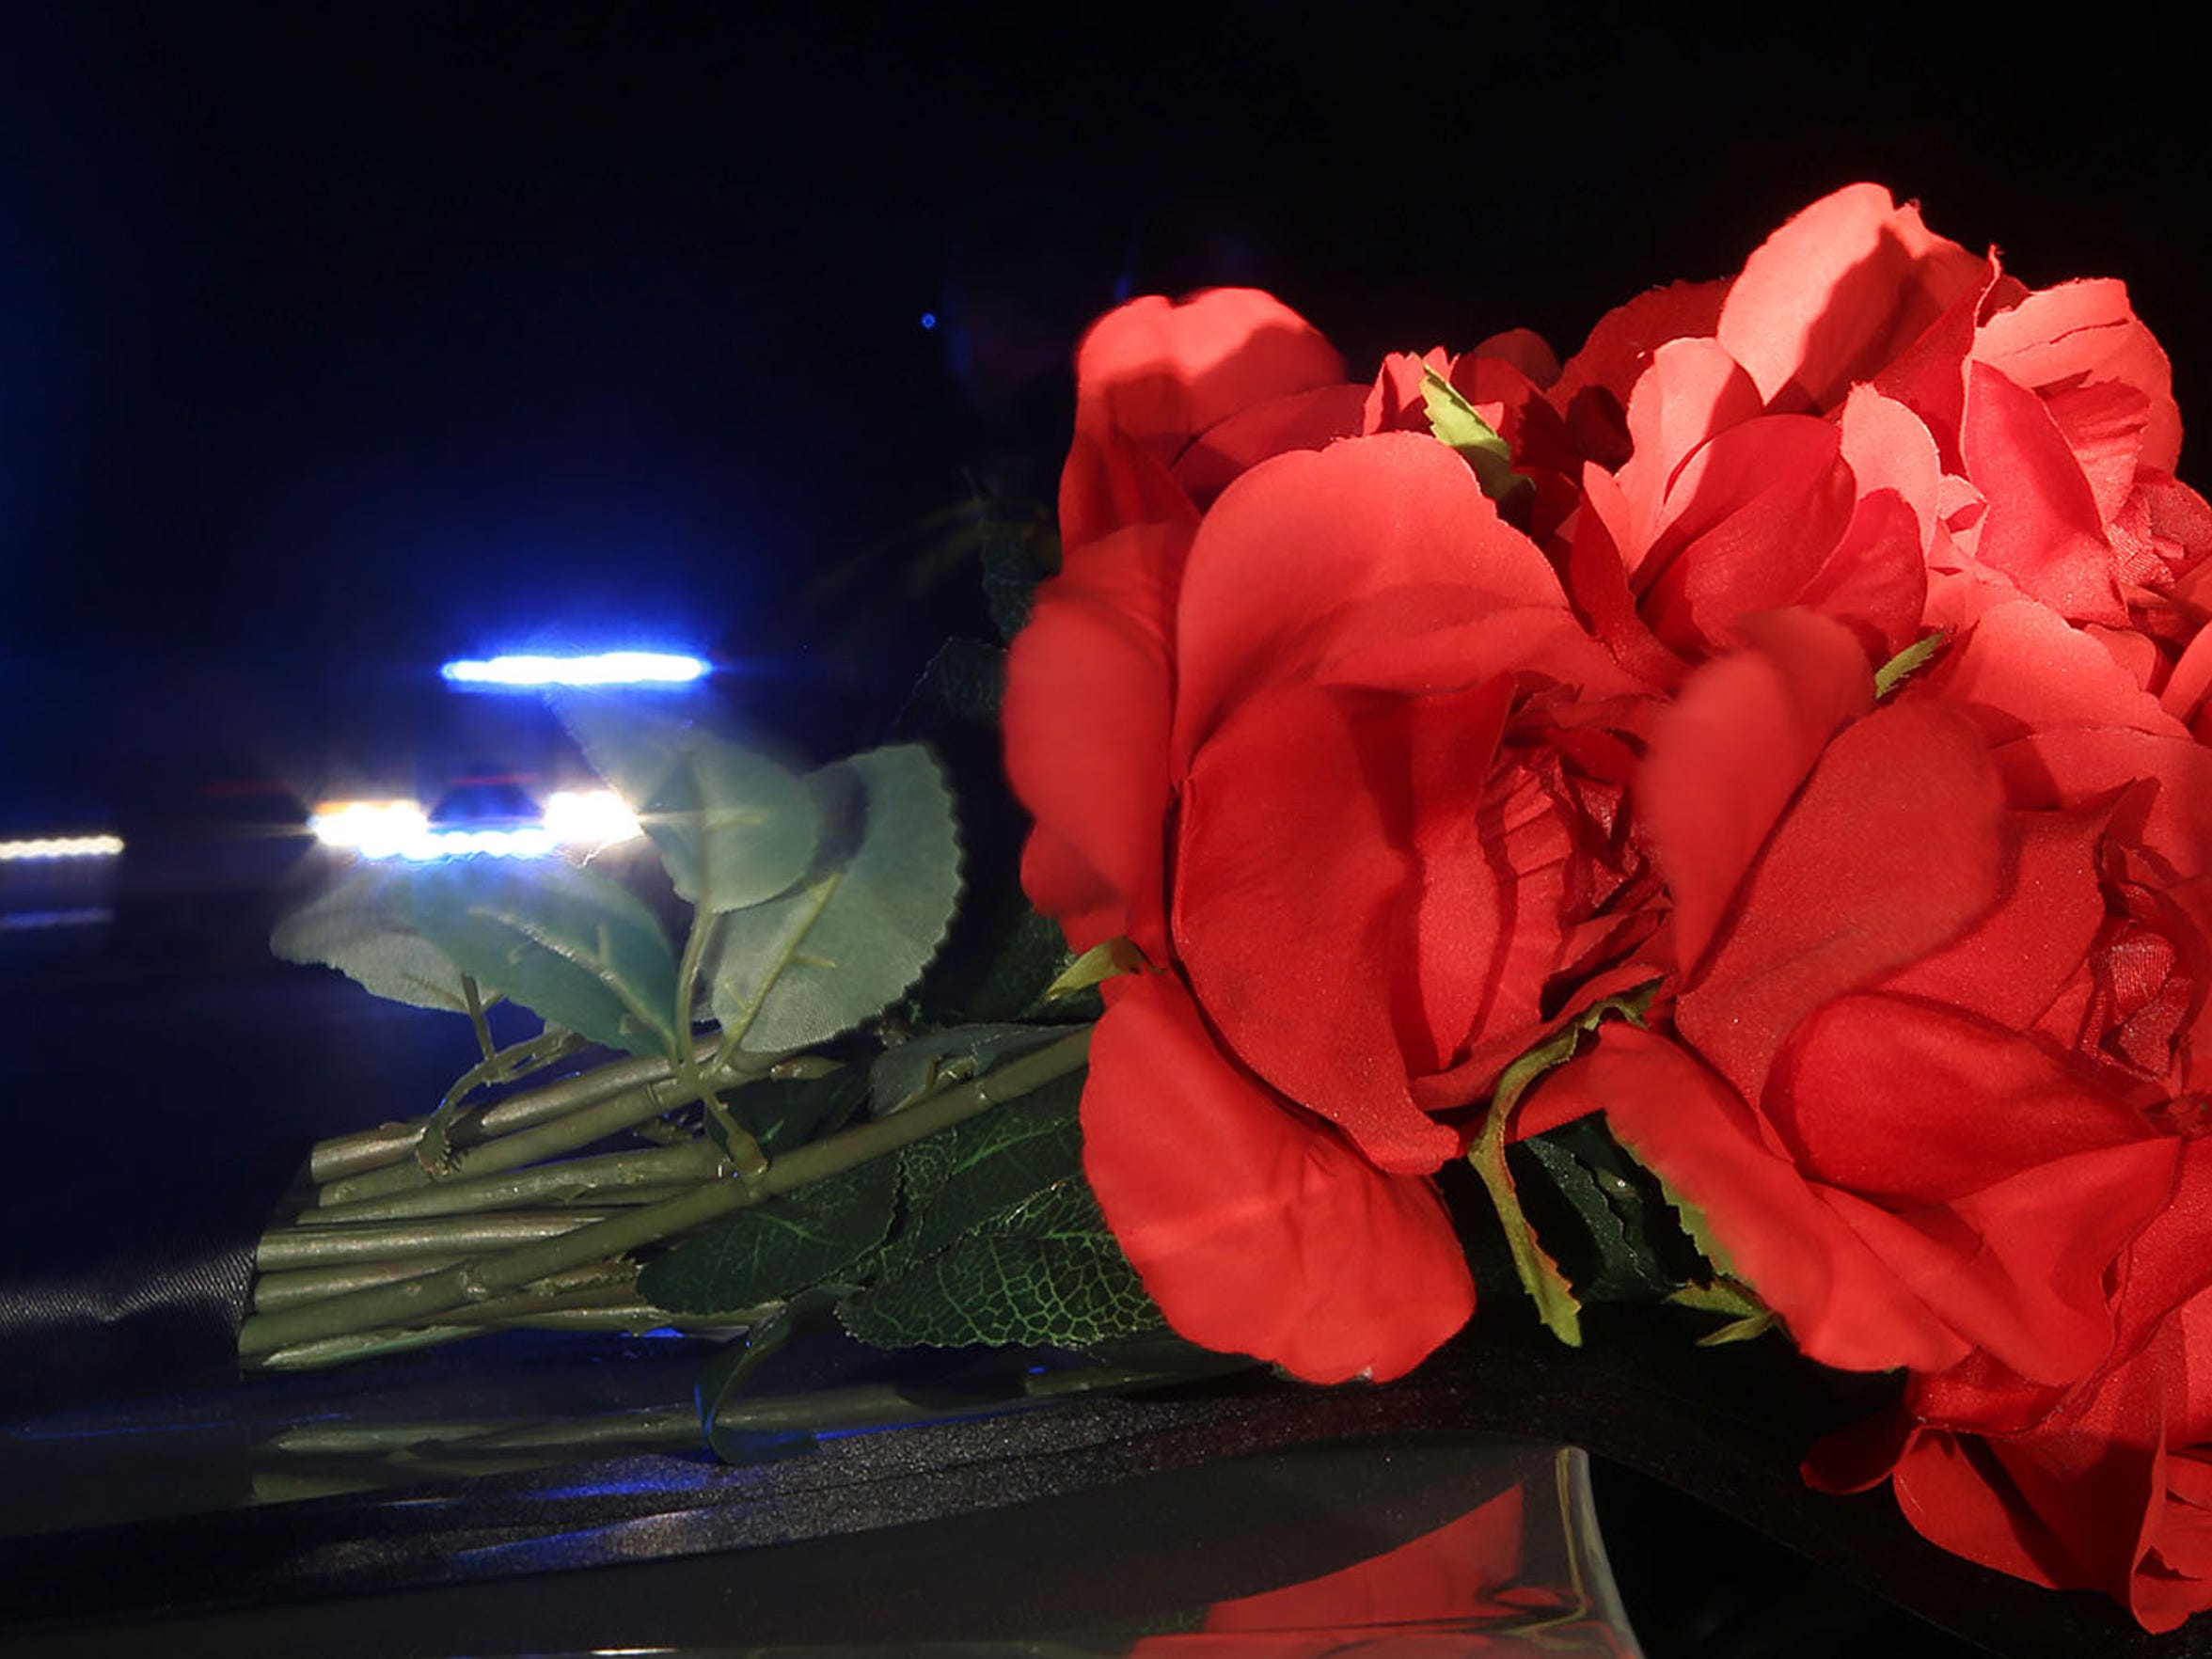 As the Sea of Blue passes by, flowers are seen Thursday on the hood of a police vehicle along U.S. Highway 70, where Madison County Sheriff's Deputy Rosemary Vela died in a single-car crash Monday night.